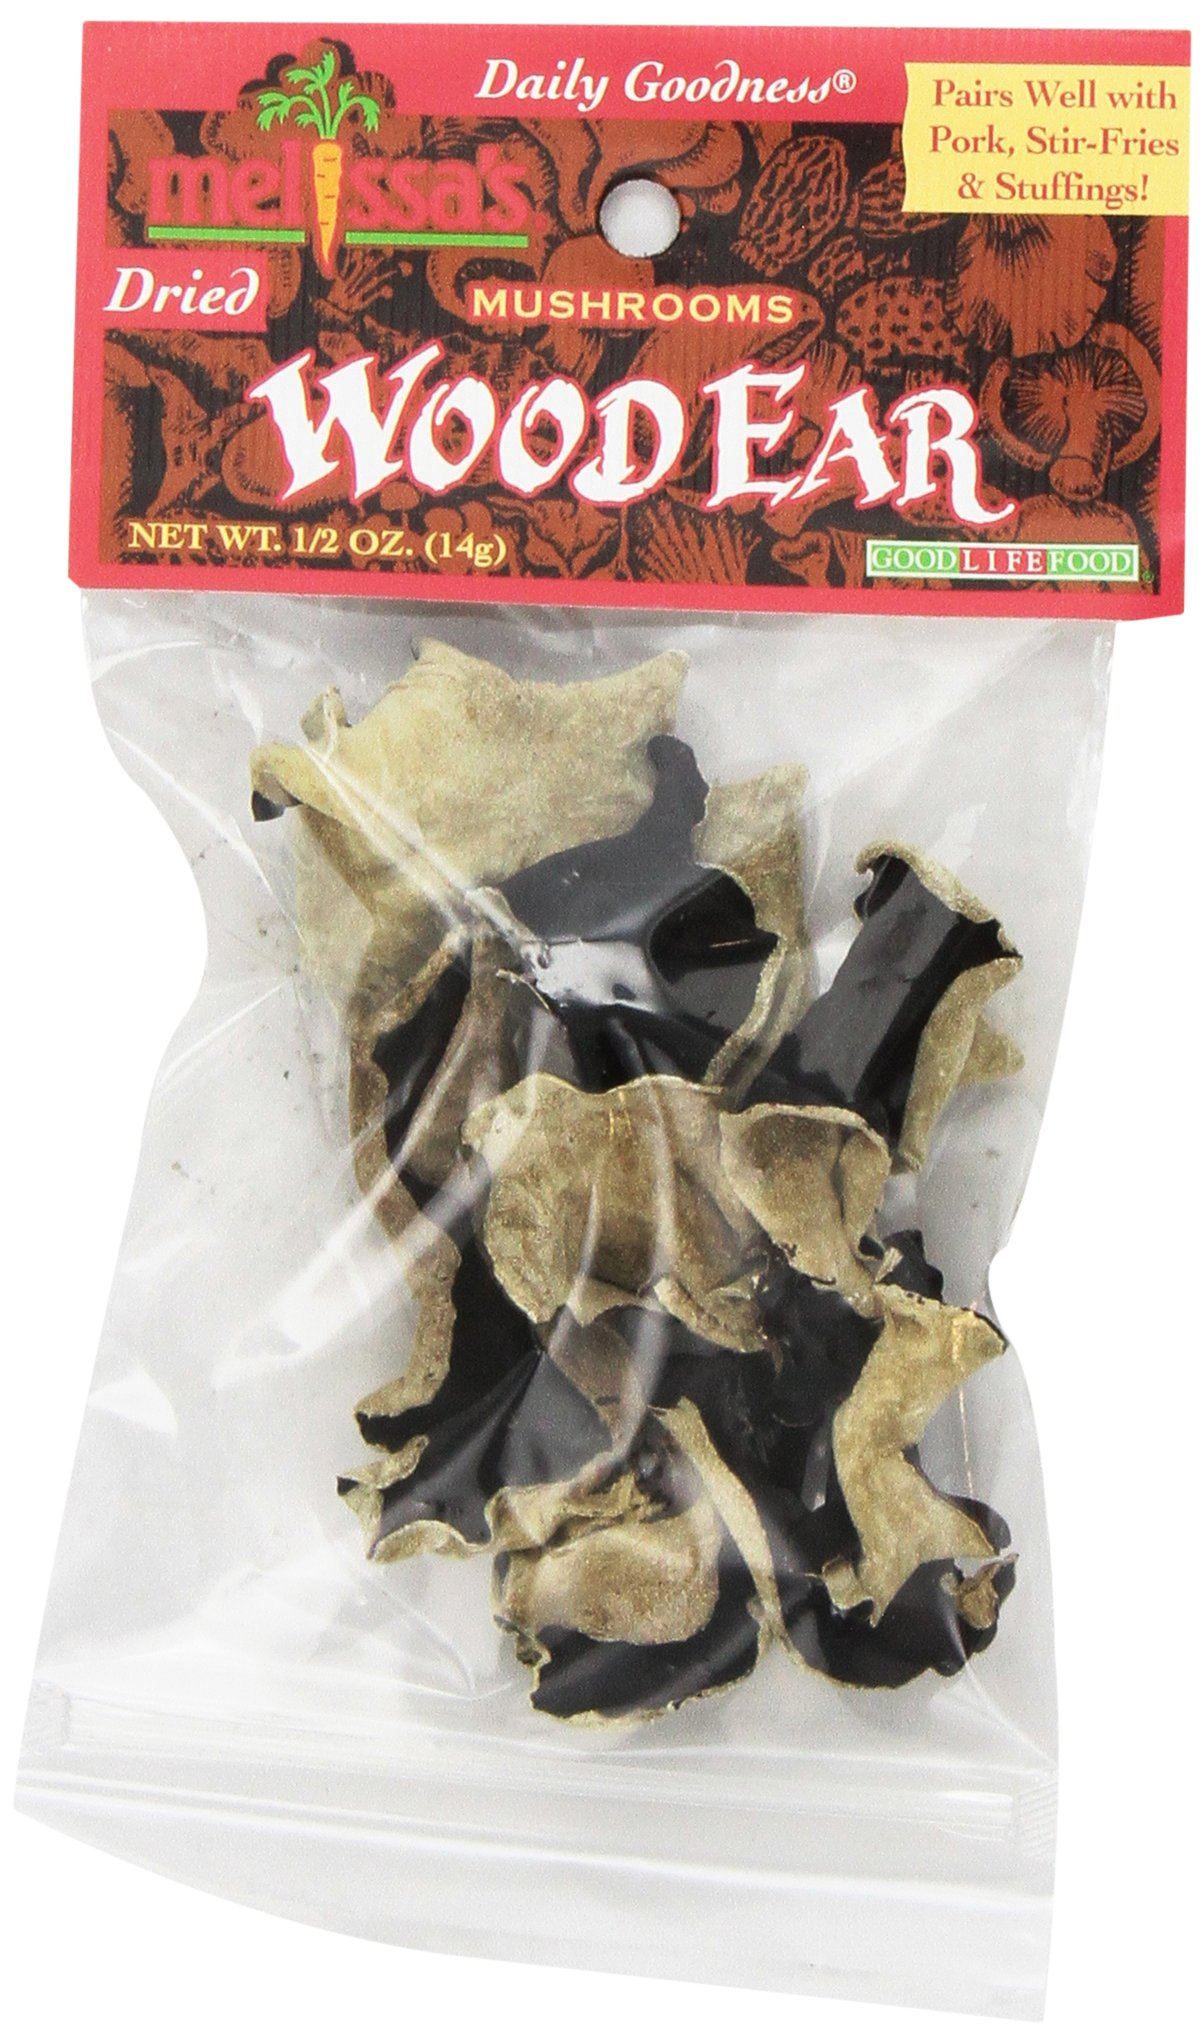 Melissa's Dried Woodear Mushrooms 0.5-Ounce Bags (Pack of 12), Dried Wild Mushrooms, Rehydrate and Cook as Fresh or Grind for Crusting Fish or Veal, Great for Cooking and Making Stocks